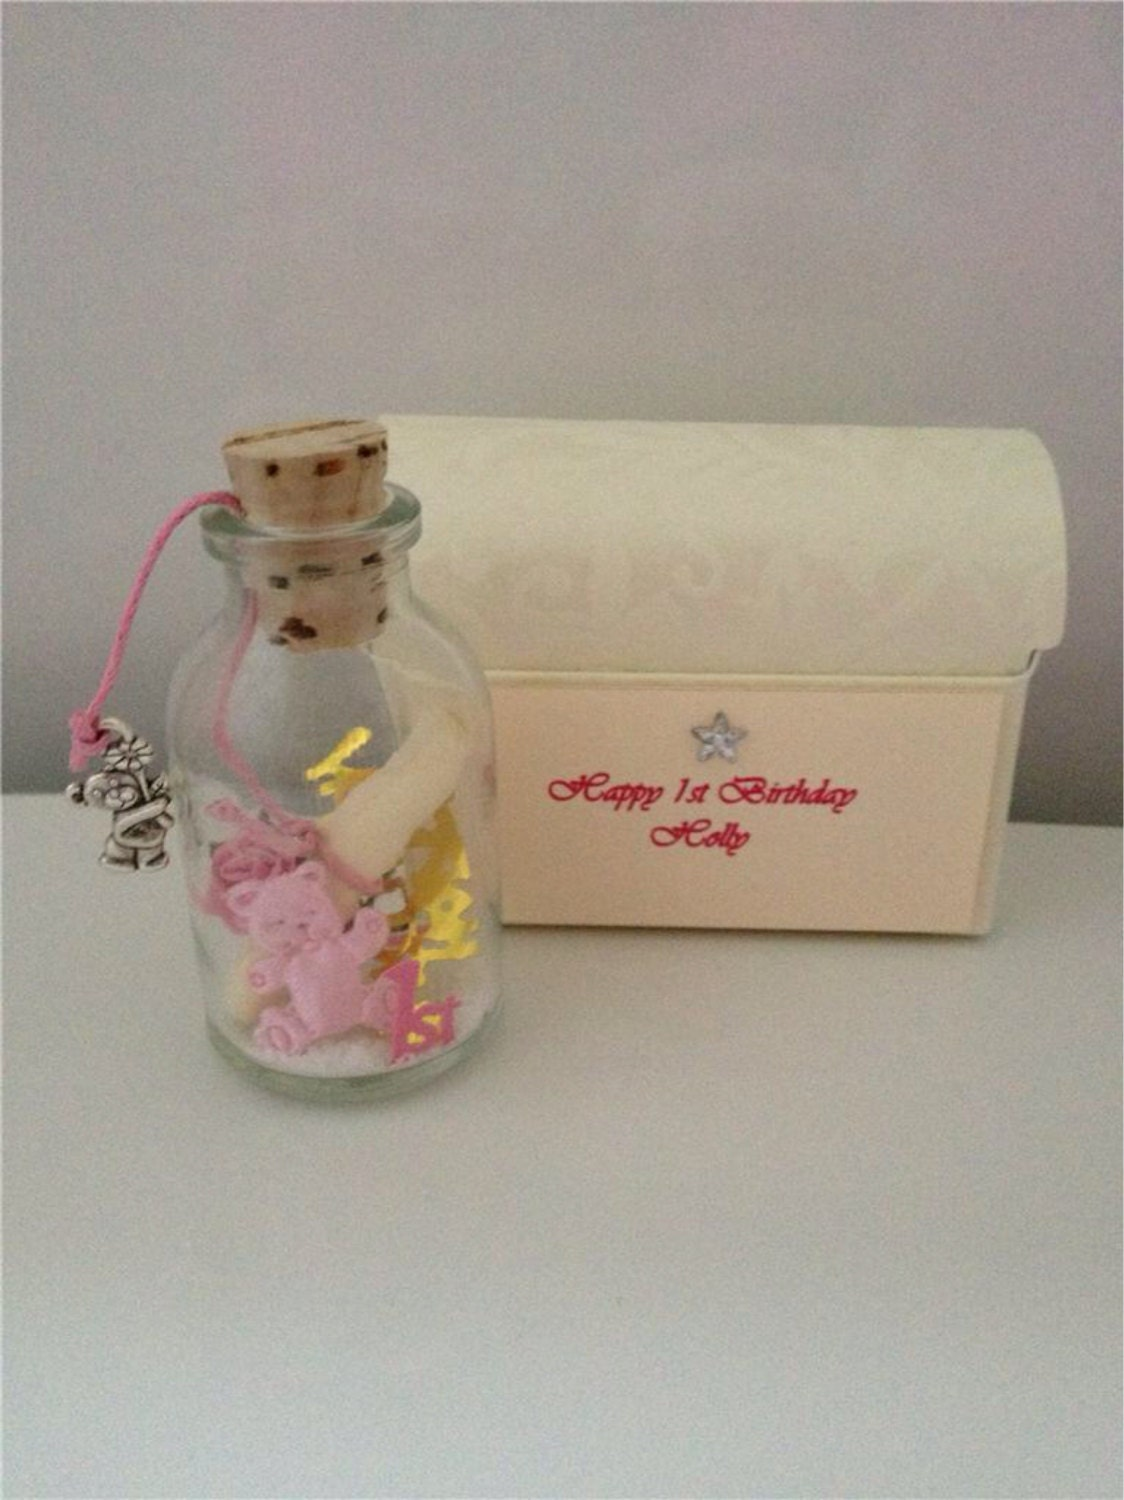 Baby Gifts For Birthday : Personalised baby gifts st birthday images